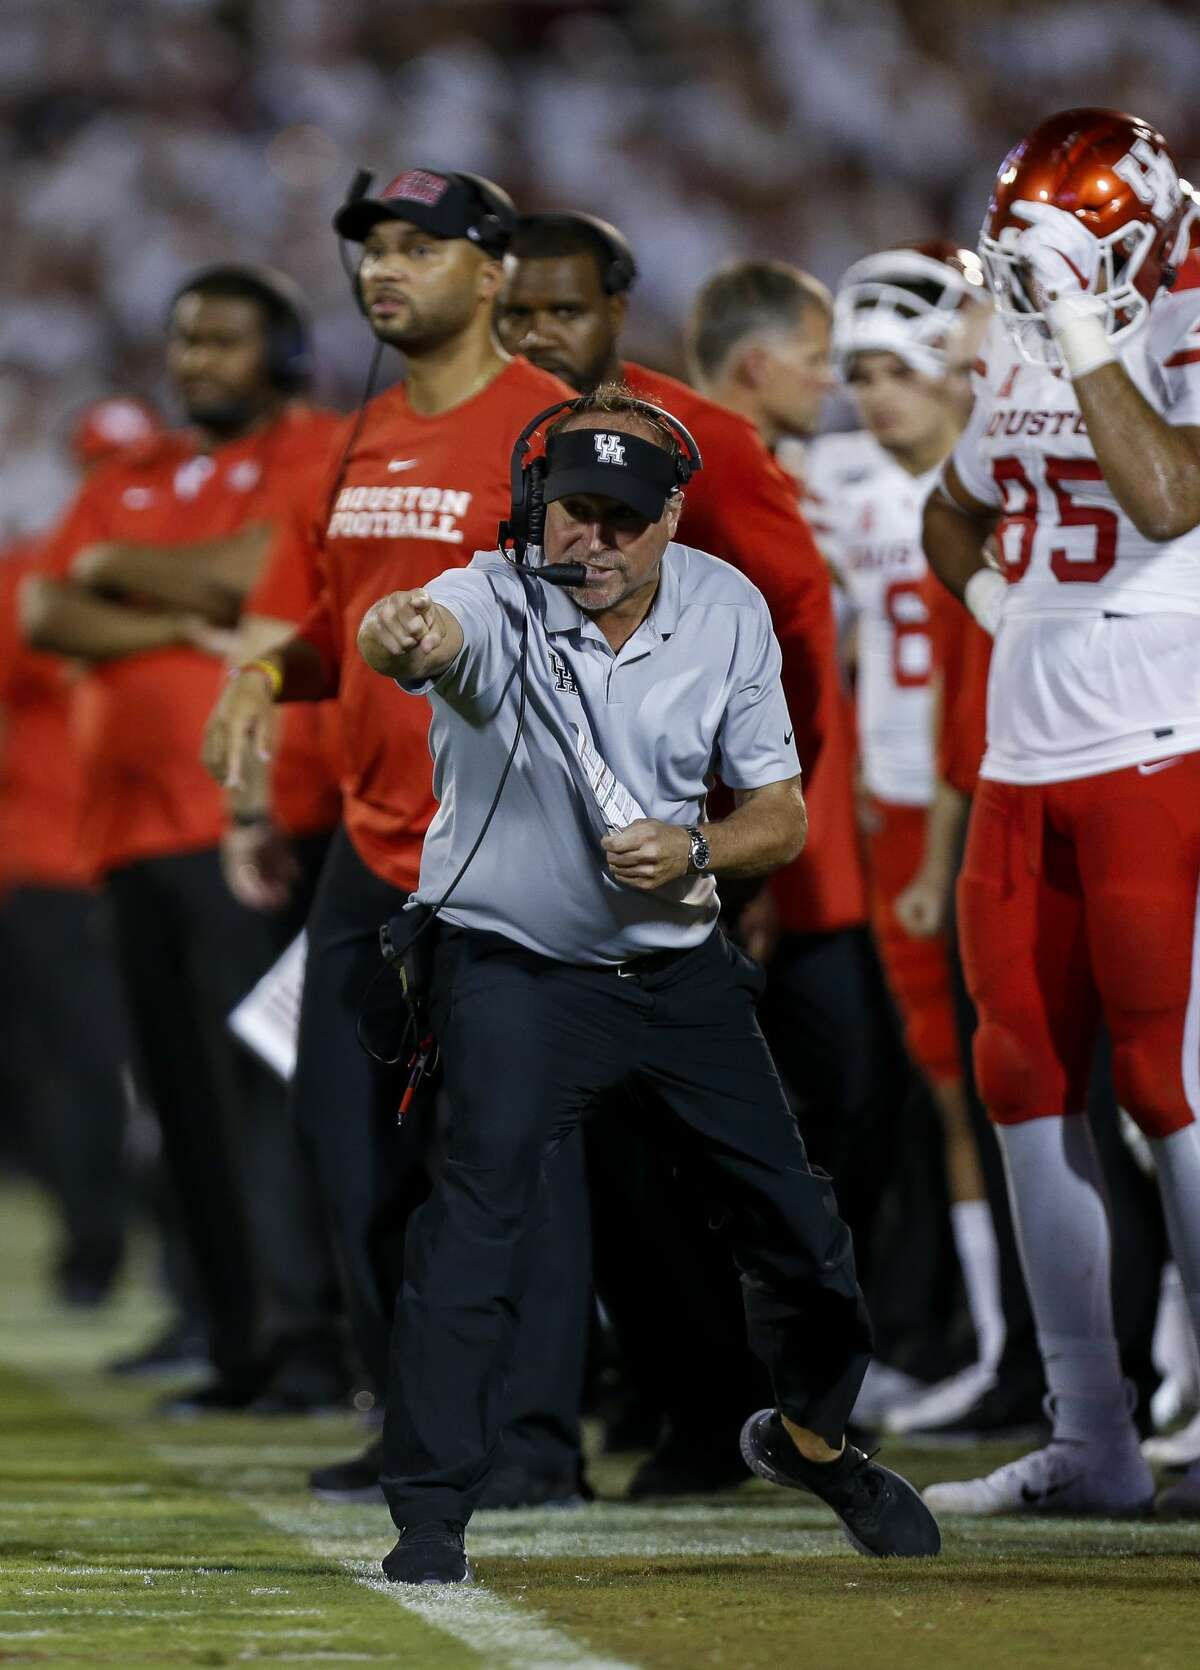 Houston Cougars head coach Dana Holgorsen signals a play from the sideline against the Oklahoma Sooners during the fourth quarter of an NCAA game at Gaylord Memorial Stadium Sunday, Sept. 1, 2019, in Norman, Oklahoma. The Sooners won 49-31.